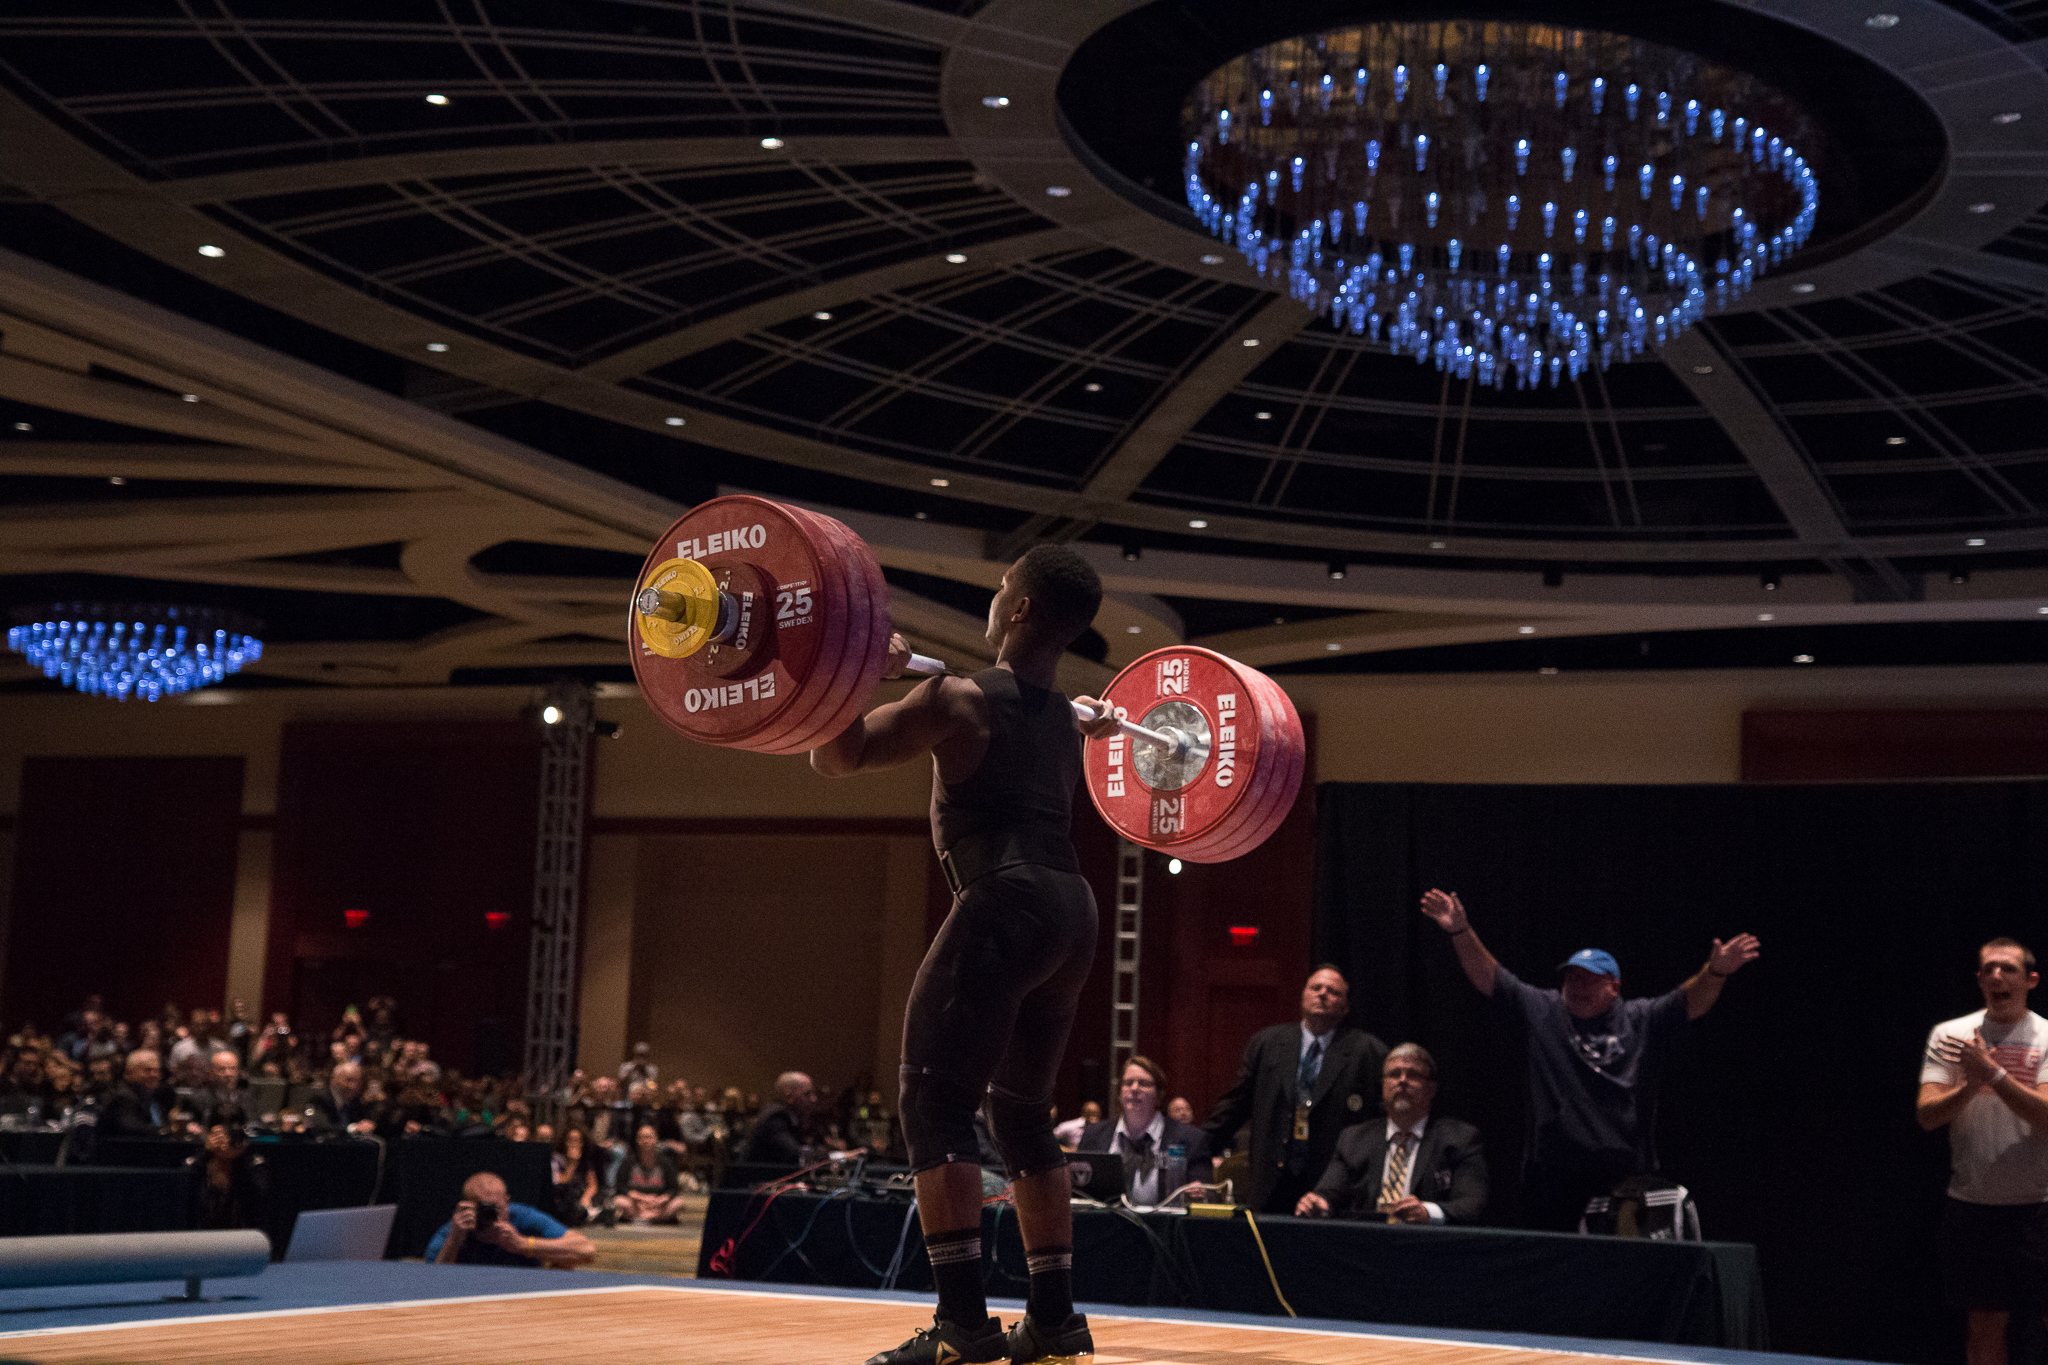 session-a-favorites-american-open-2016-weightlifting-photography (17 of 38).jpg